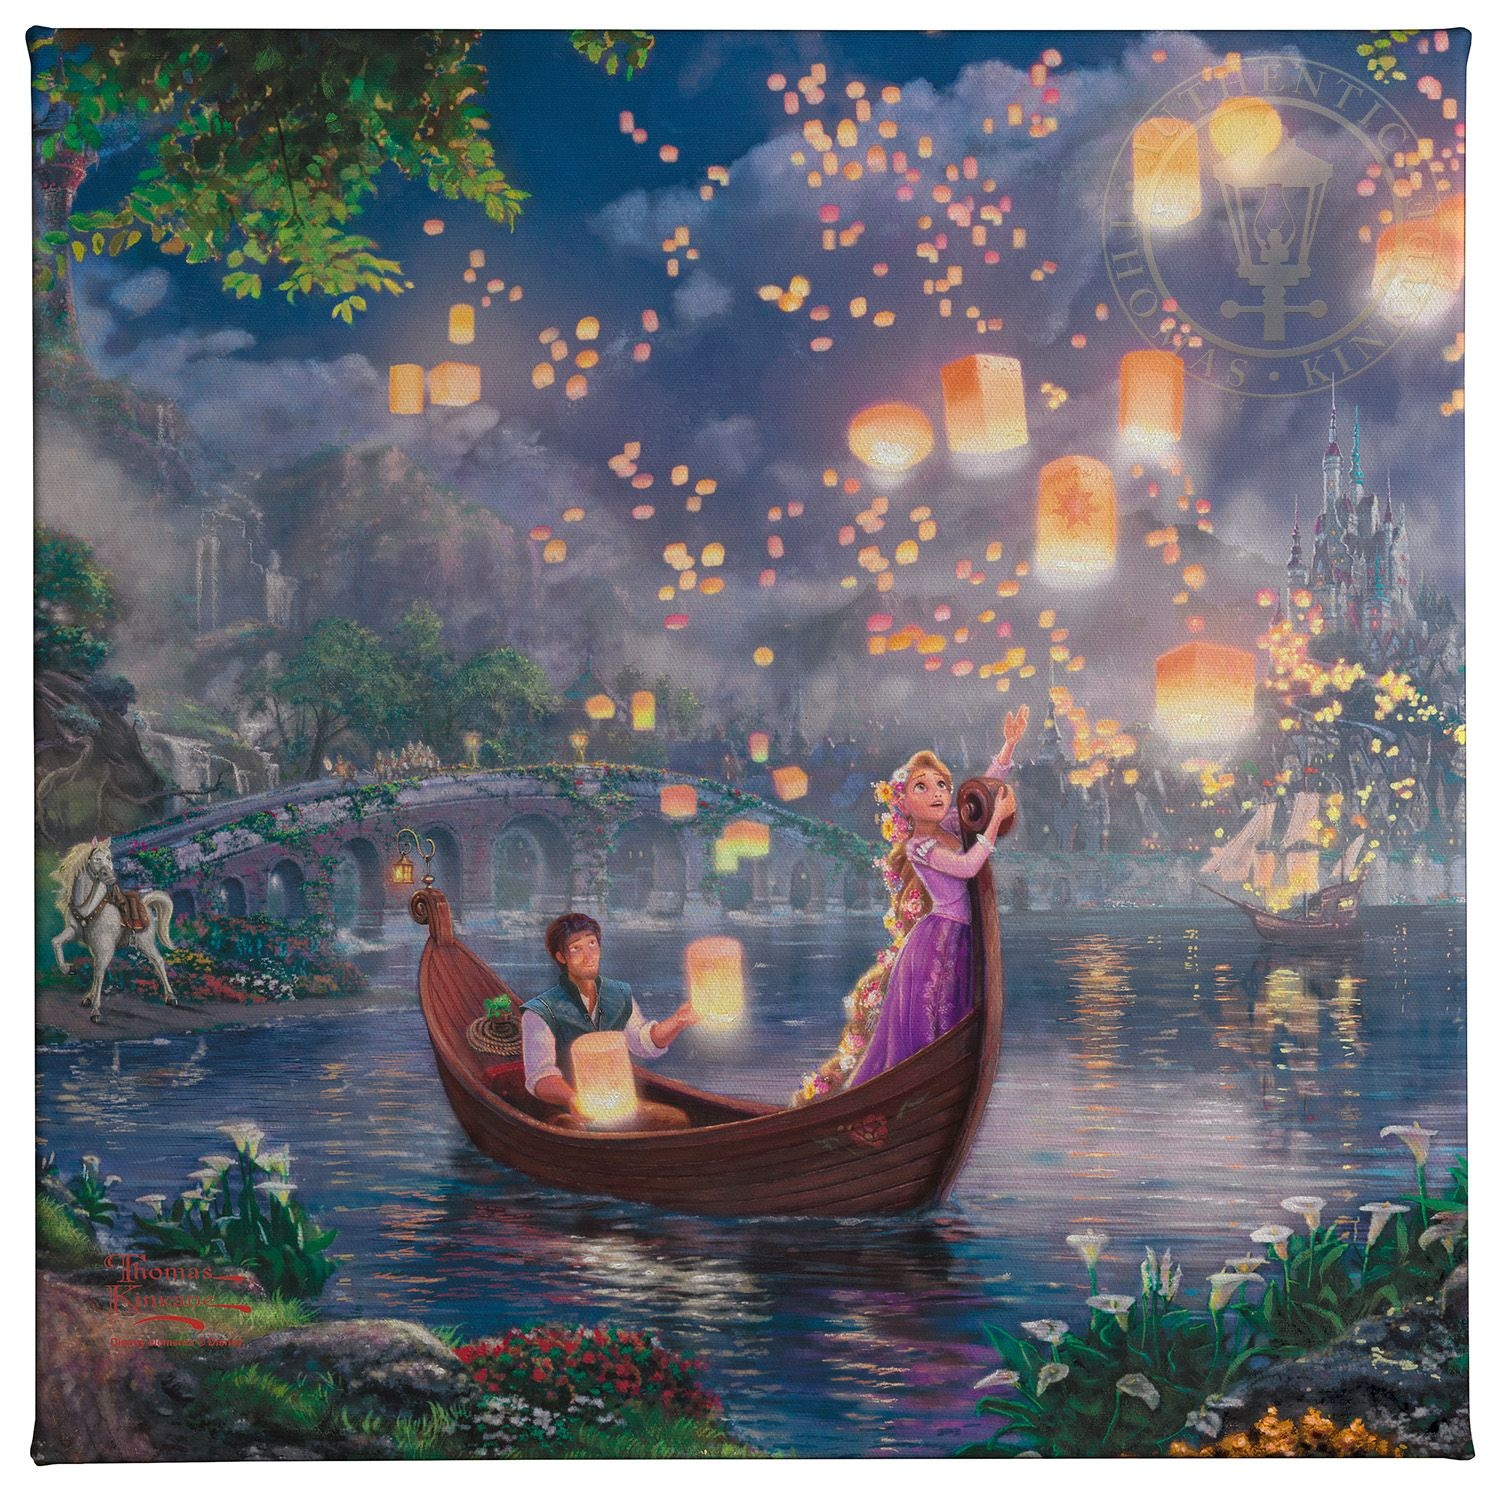 Tangled – 14″ x 14″ Gallery Wrapped Canvas | Thomas Kinkade Studios